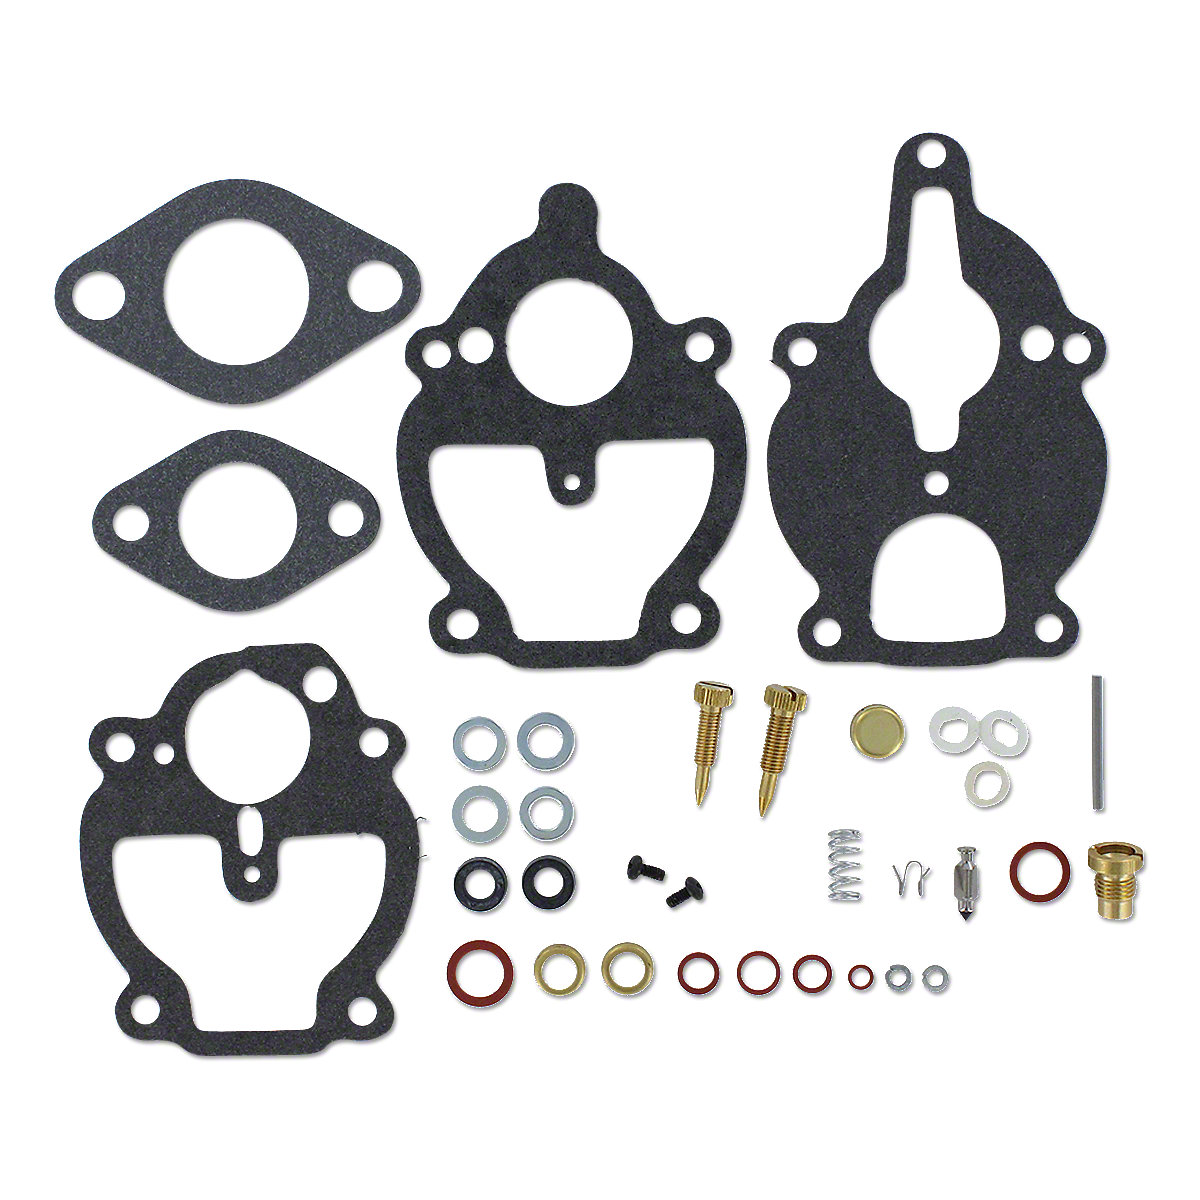 ABC1346 Economy Zenith Carburetor Repair Kit